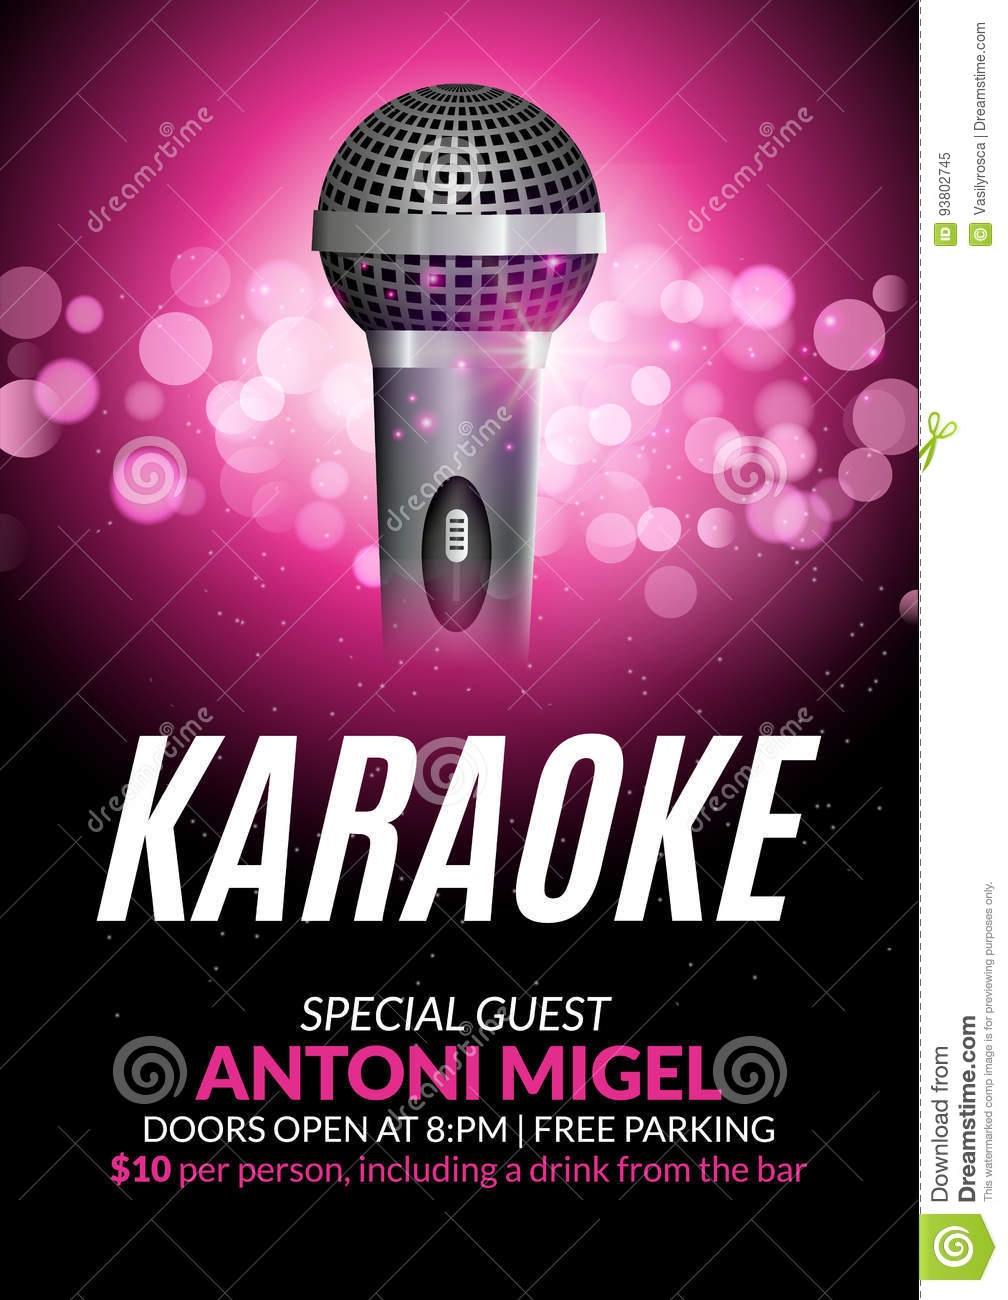 Download Karaoke Party Invitation Poster Design Template. Karaoke Night  Flyer Design. Music Voice Concert